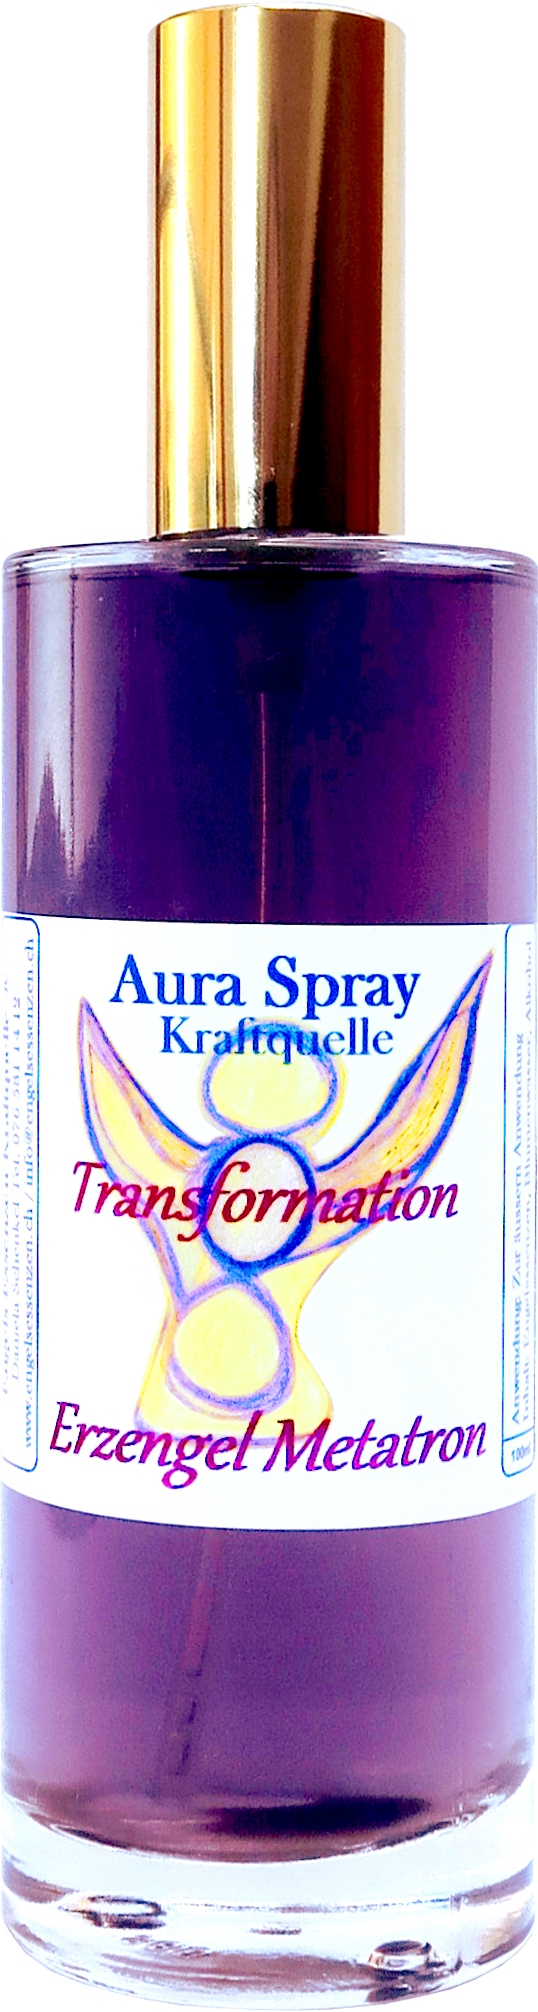 Spray per l`aura Arcangelo Metatron